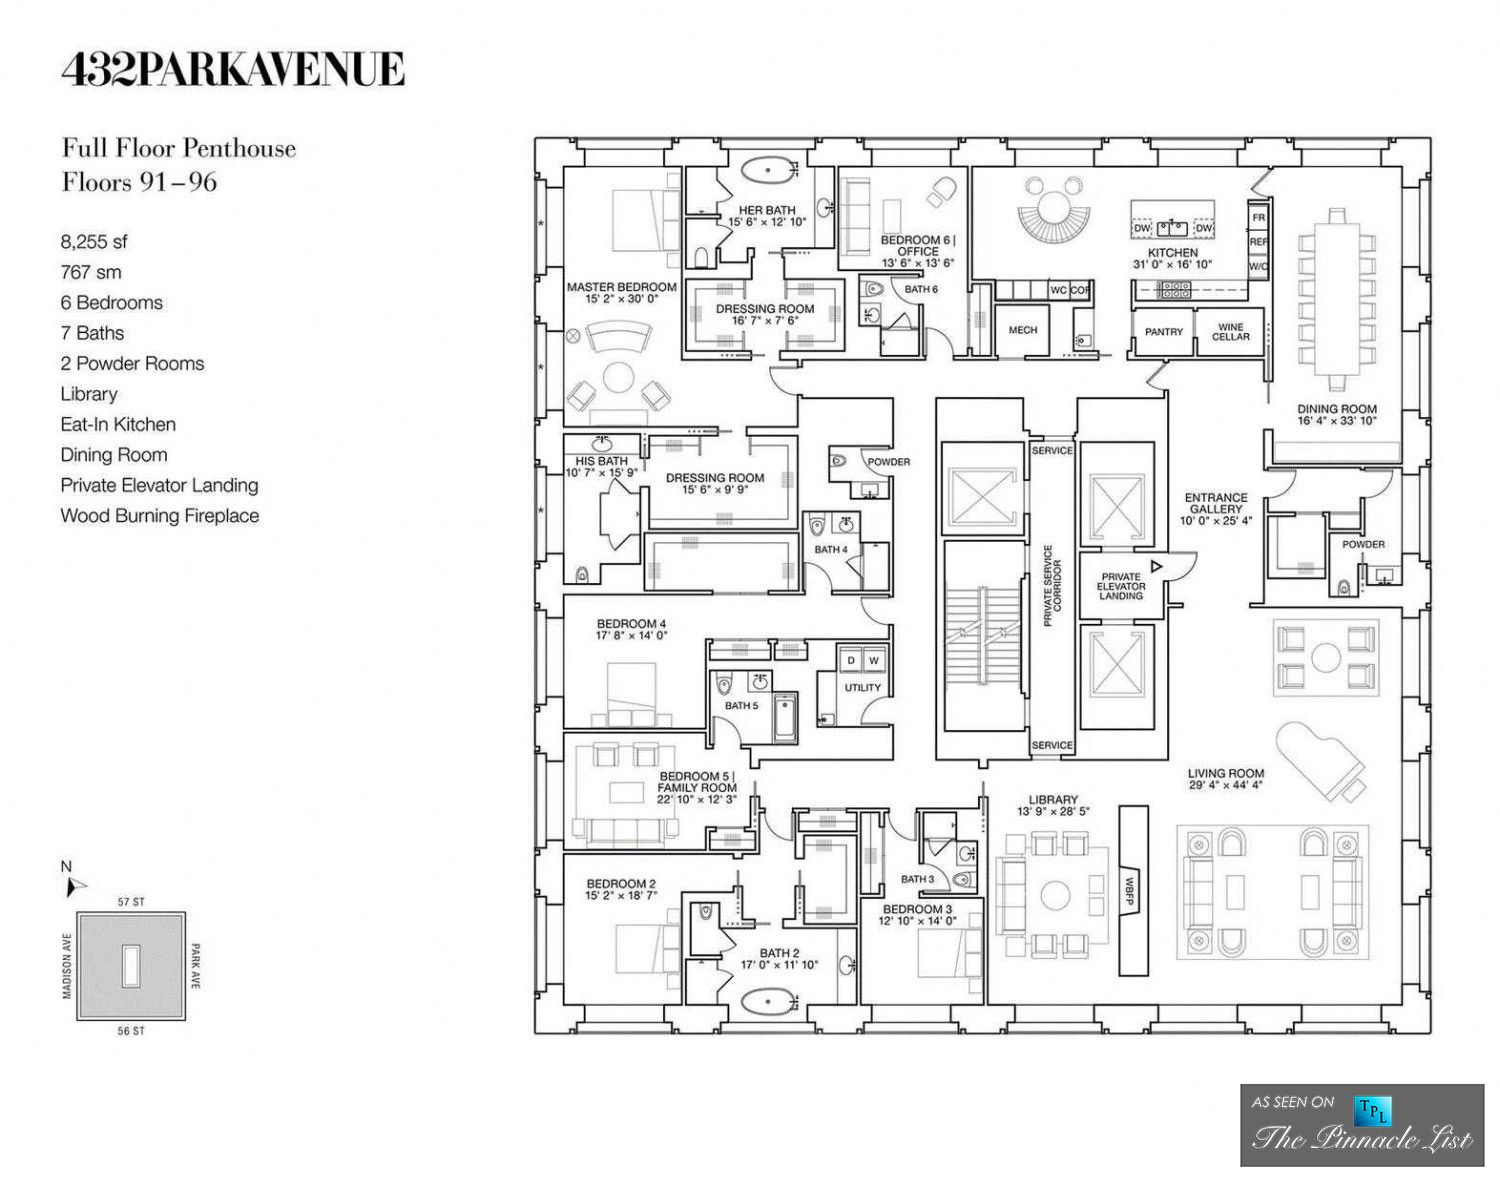 Luxury penthouse floor plan ph92 432 park avenue new for Apartment floor plans new york city